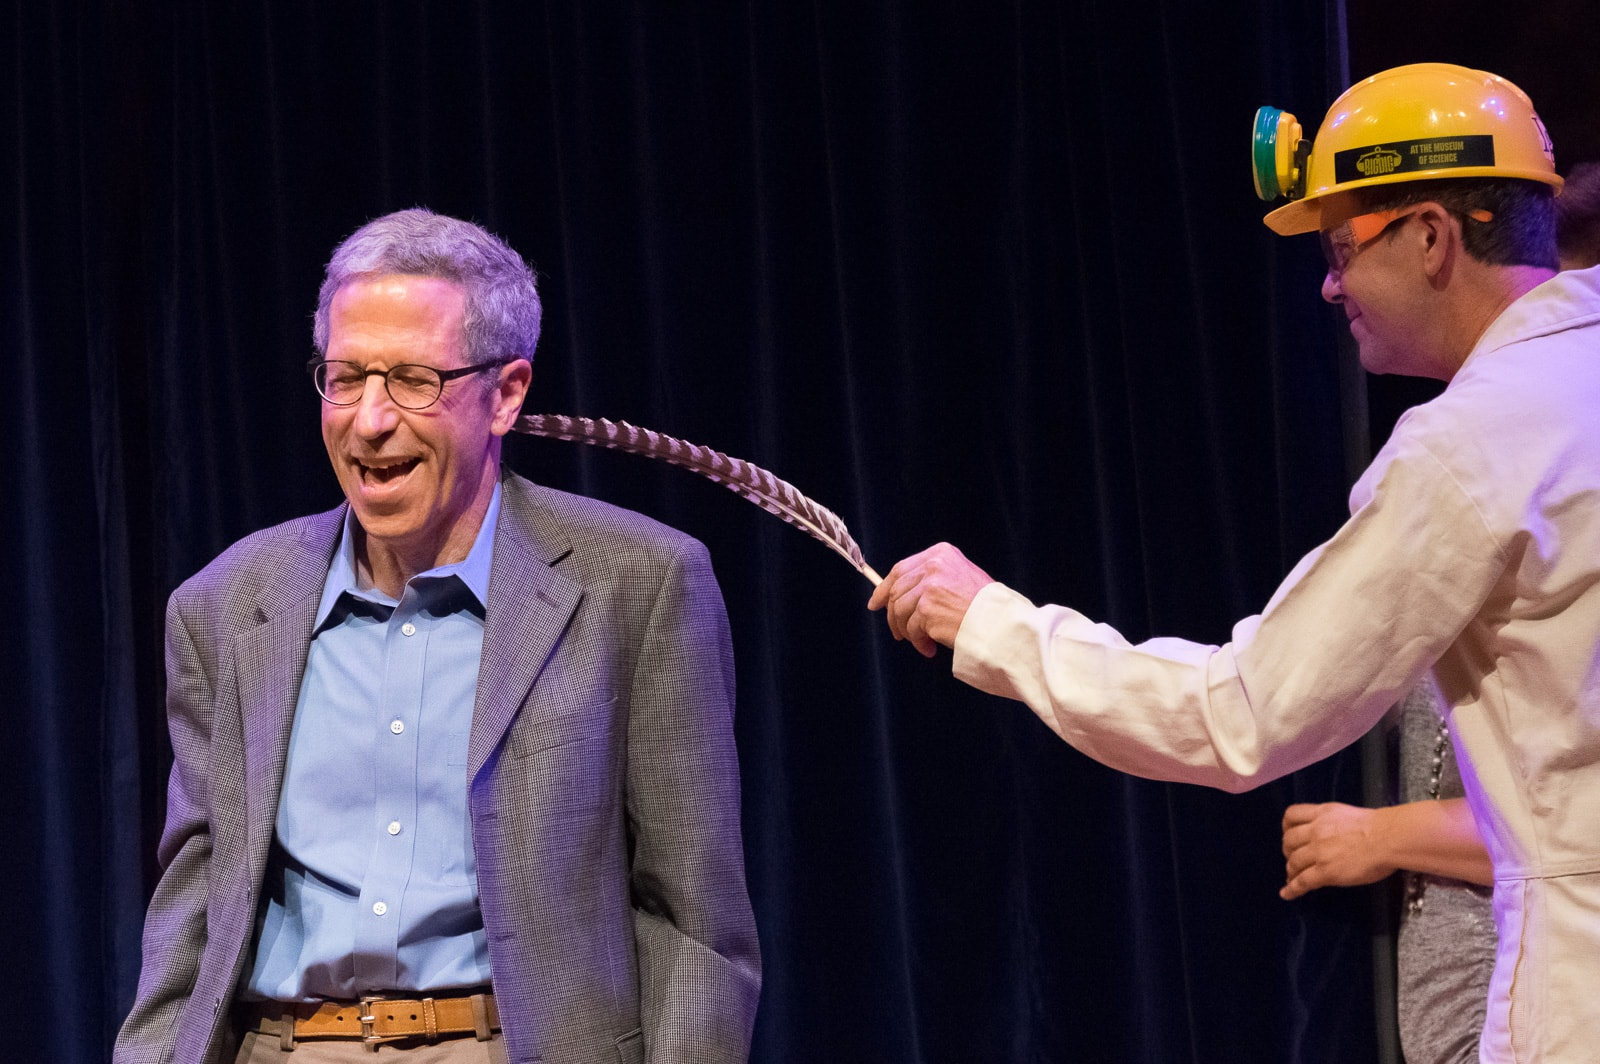 Nobel Laureate Eric Maskin, with Eric Workman and a feather. Credit: Howard I Cannon